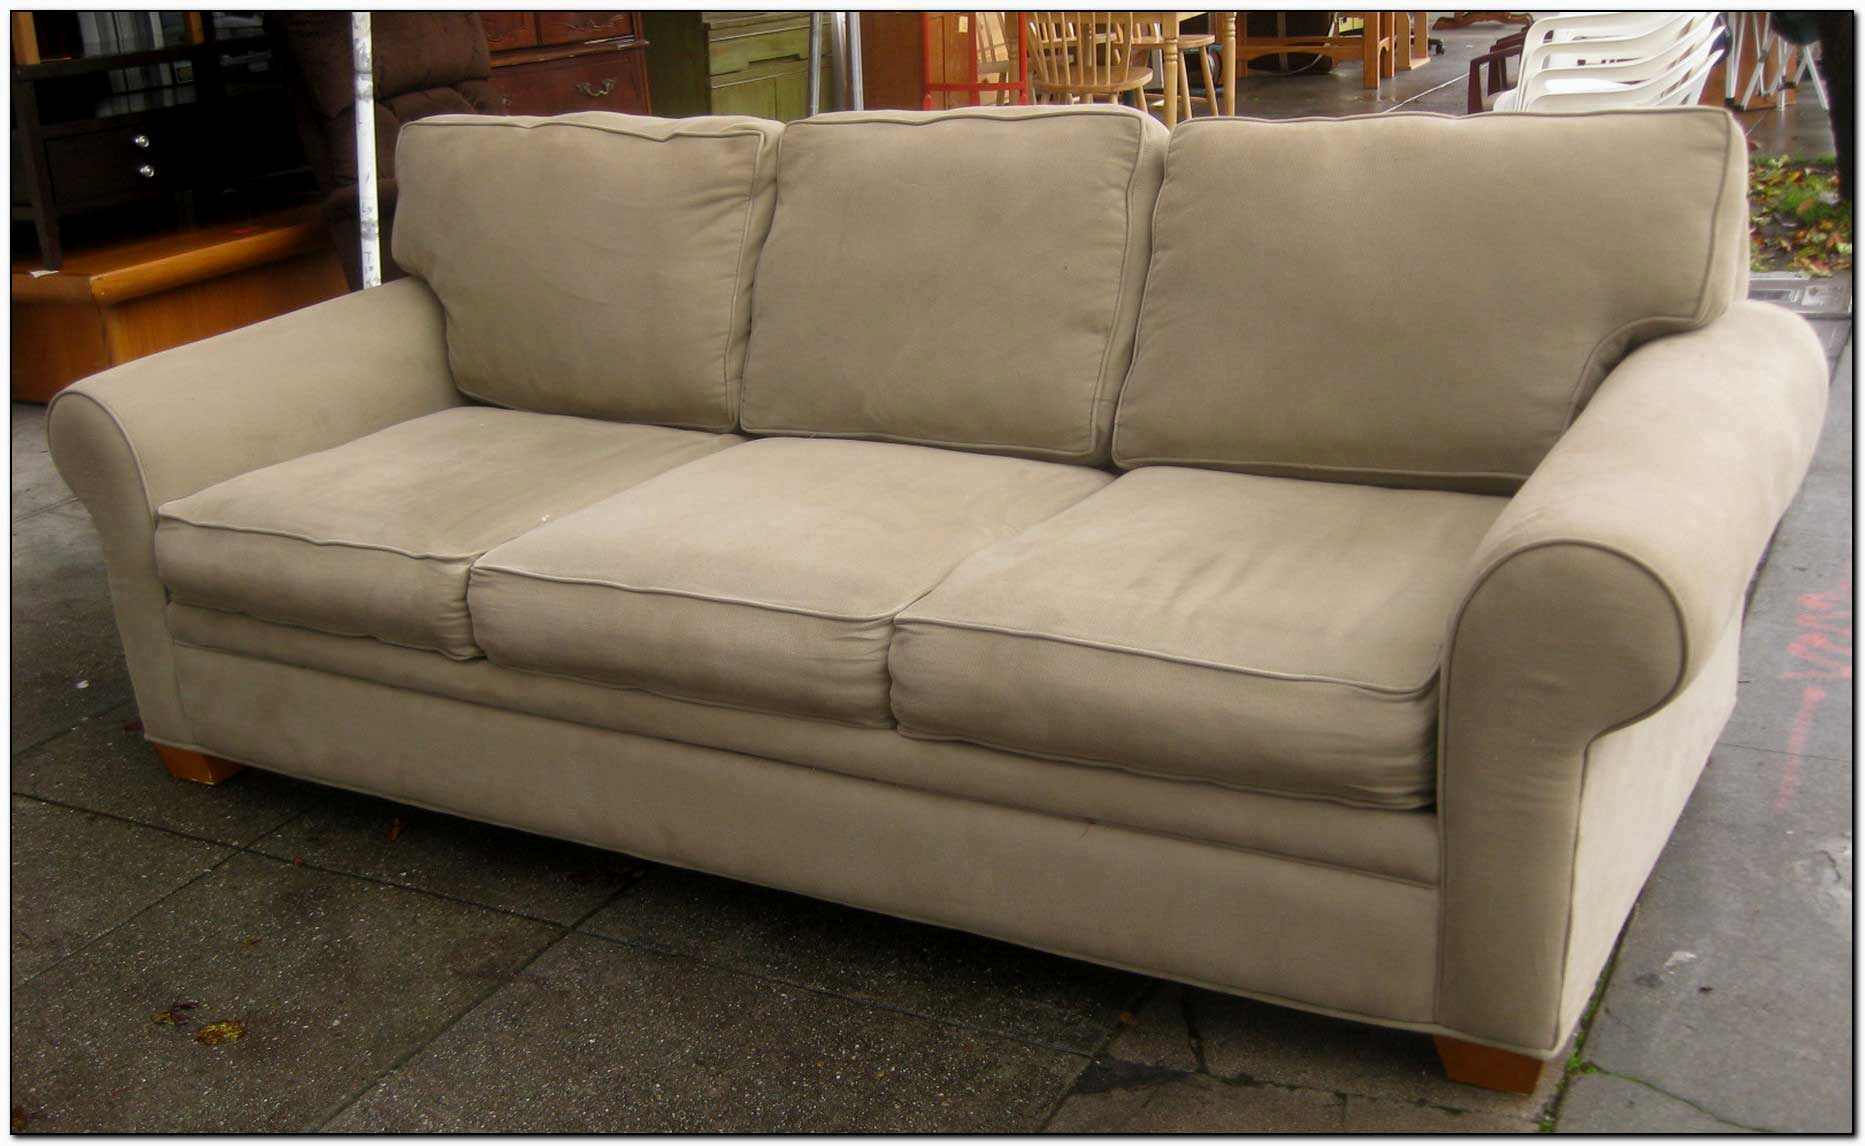 finest beige sectional sofa collection-Awesome Beige Sectional sofa Wallpaper